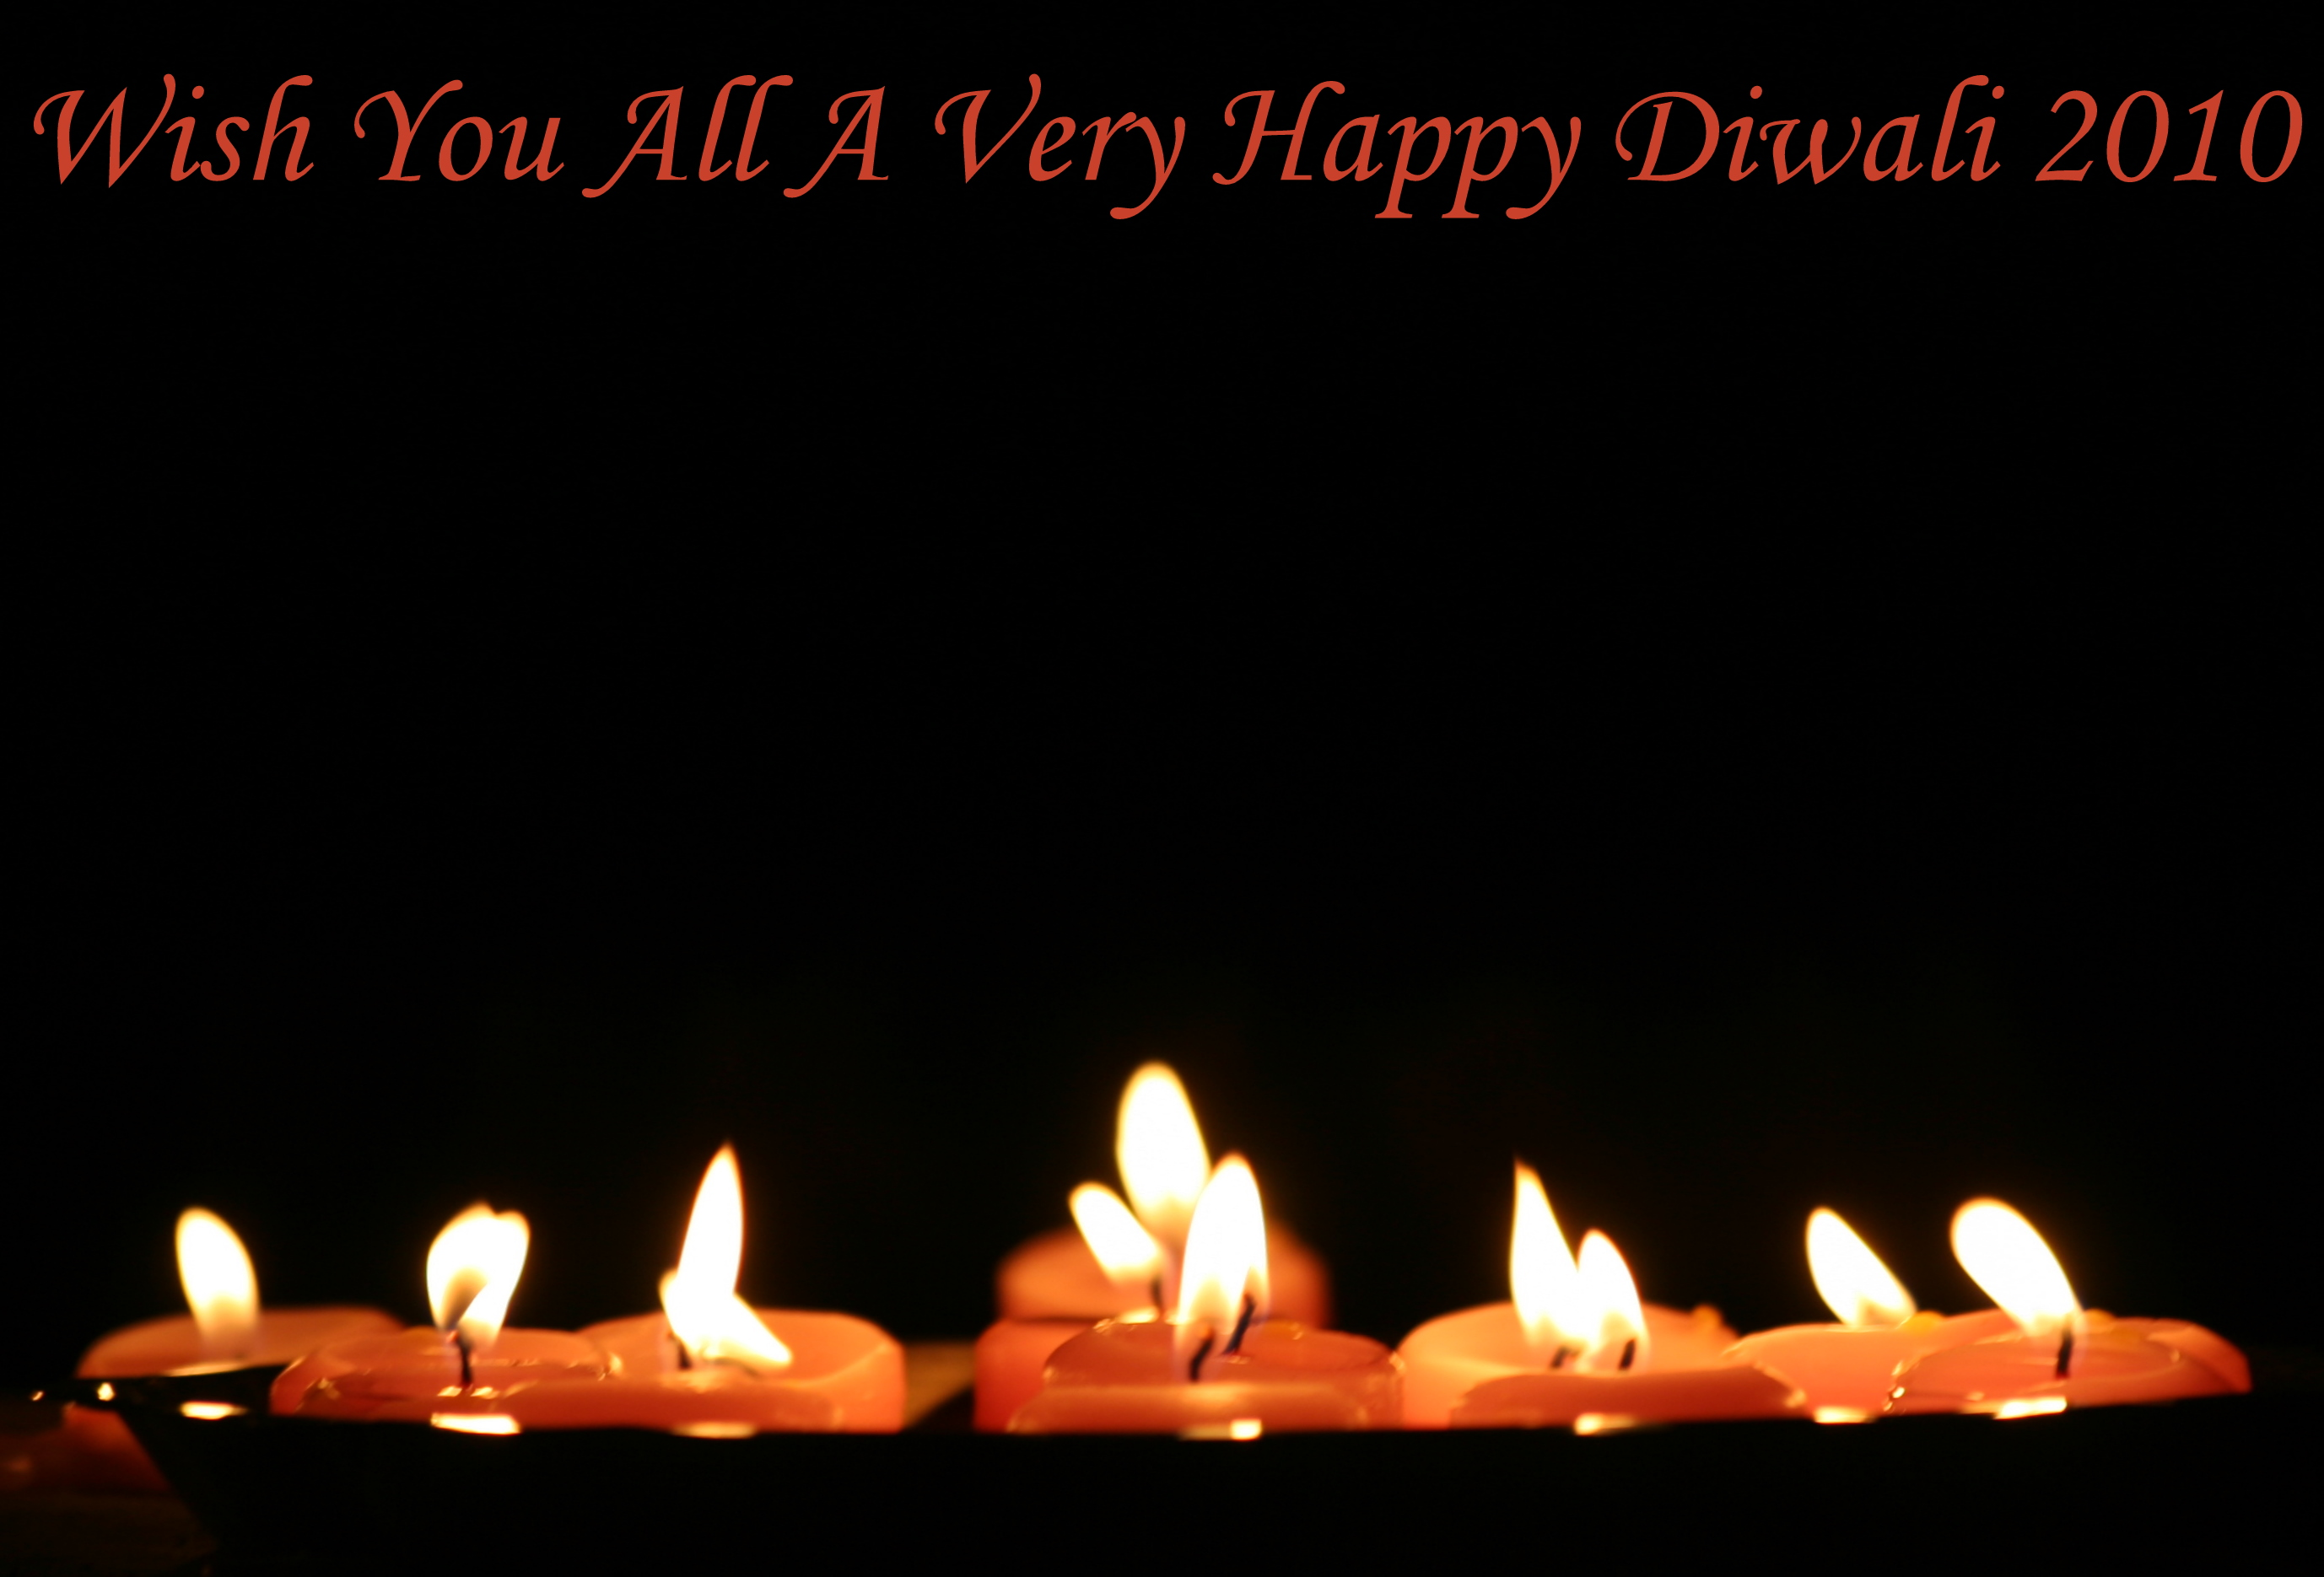 Diwali Greetings Travel Tales From India And Abroad